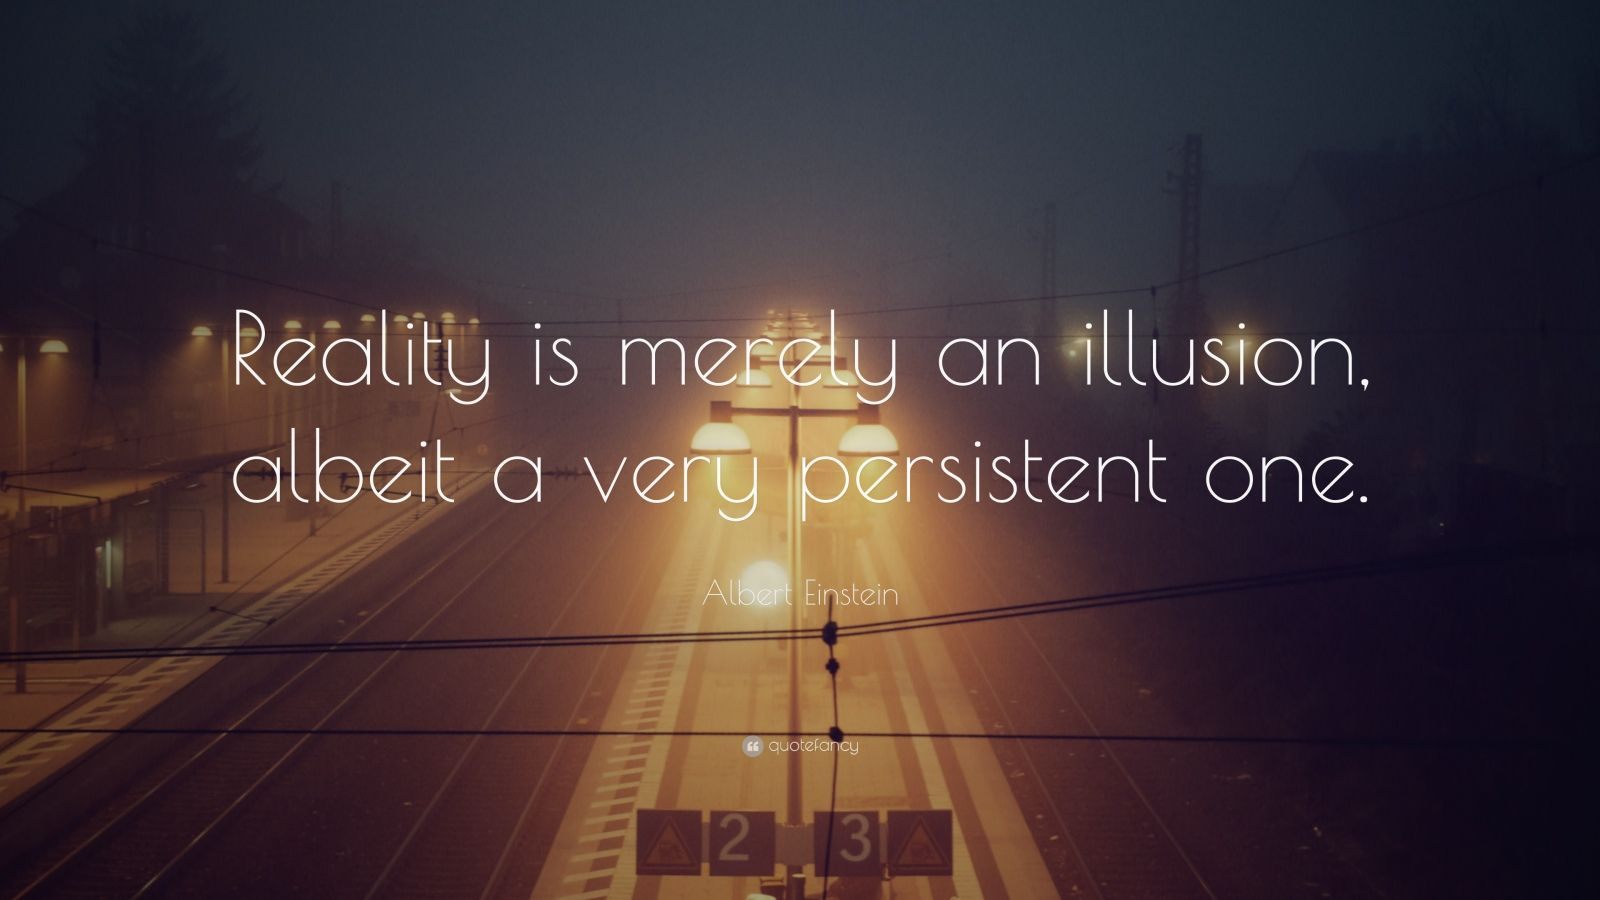 is reality an illusion